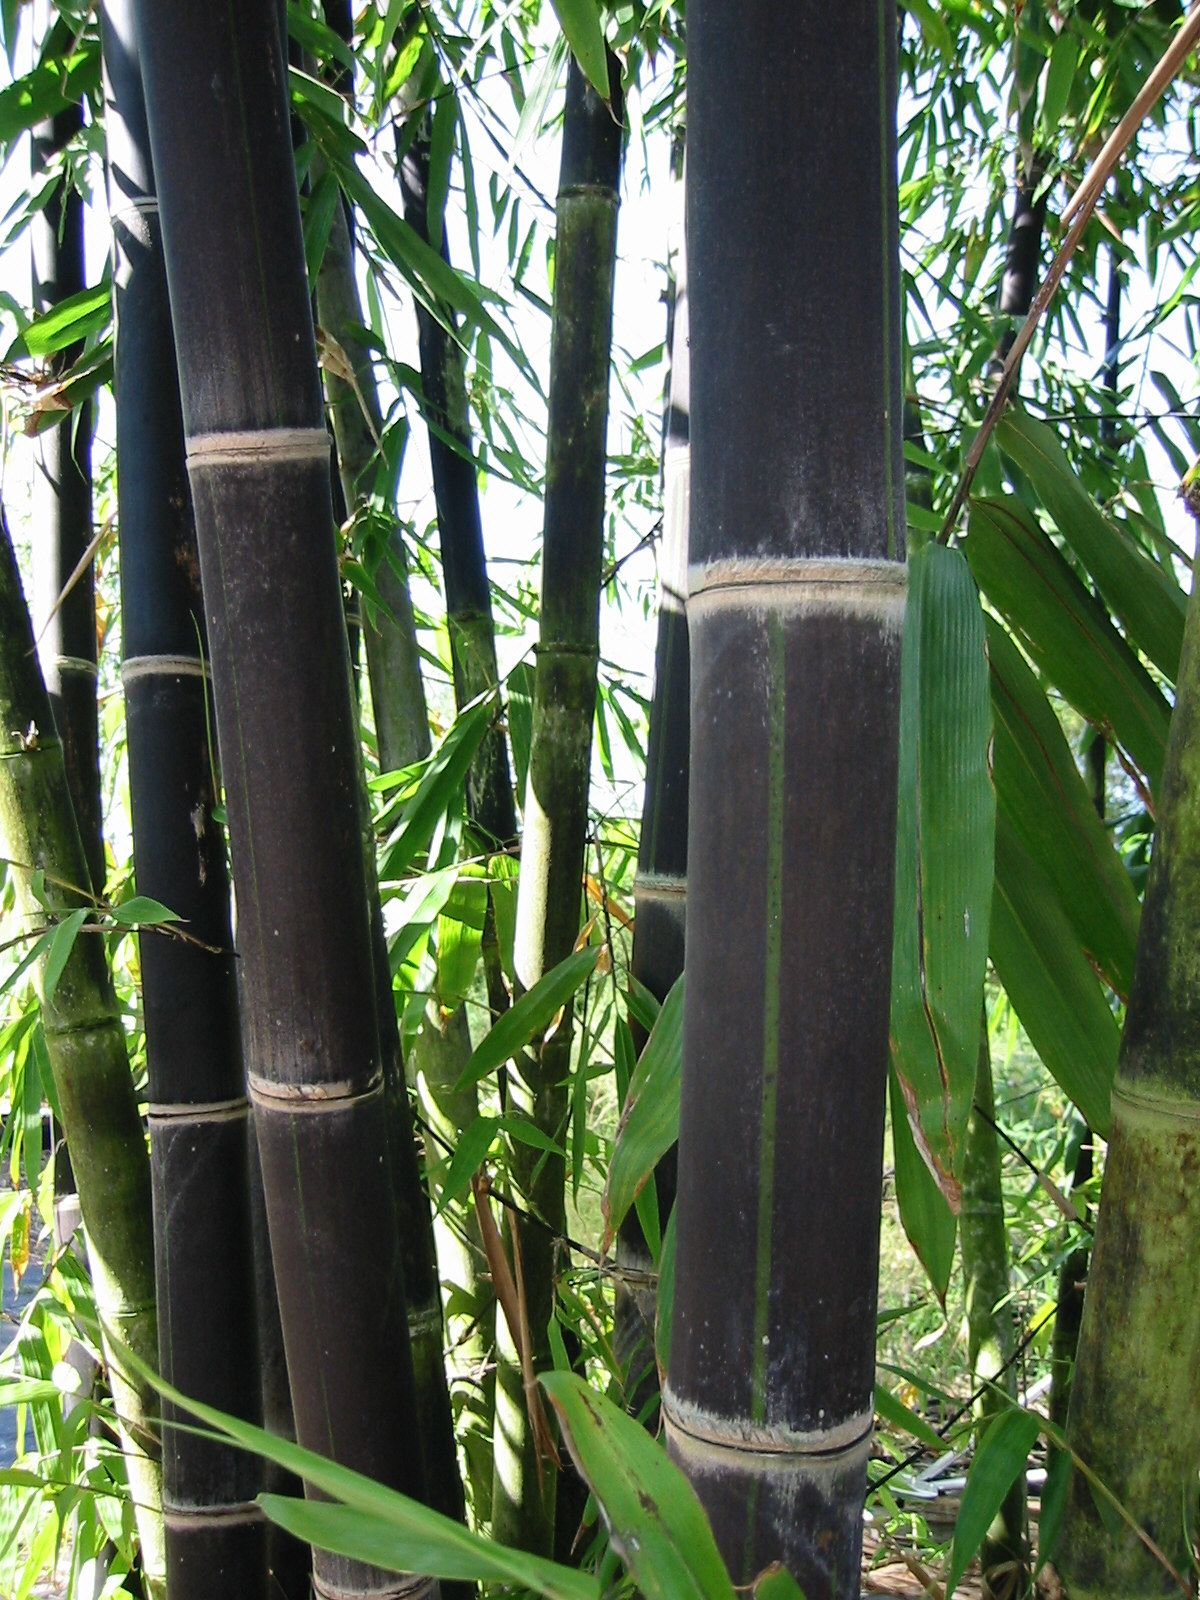 Phyllostachys Nigra In Pots Evidently Black Bamboo Will Grow In Containers In Illinois Which